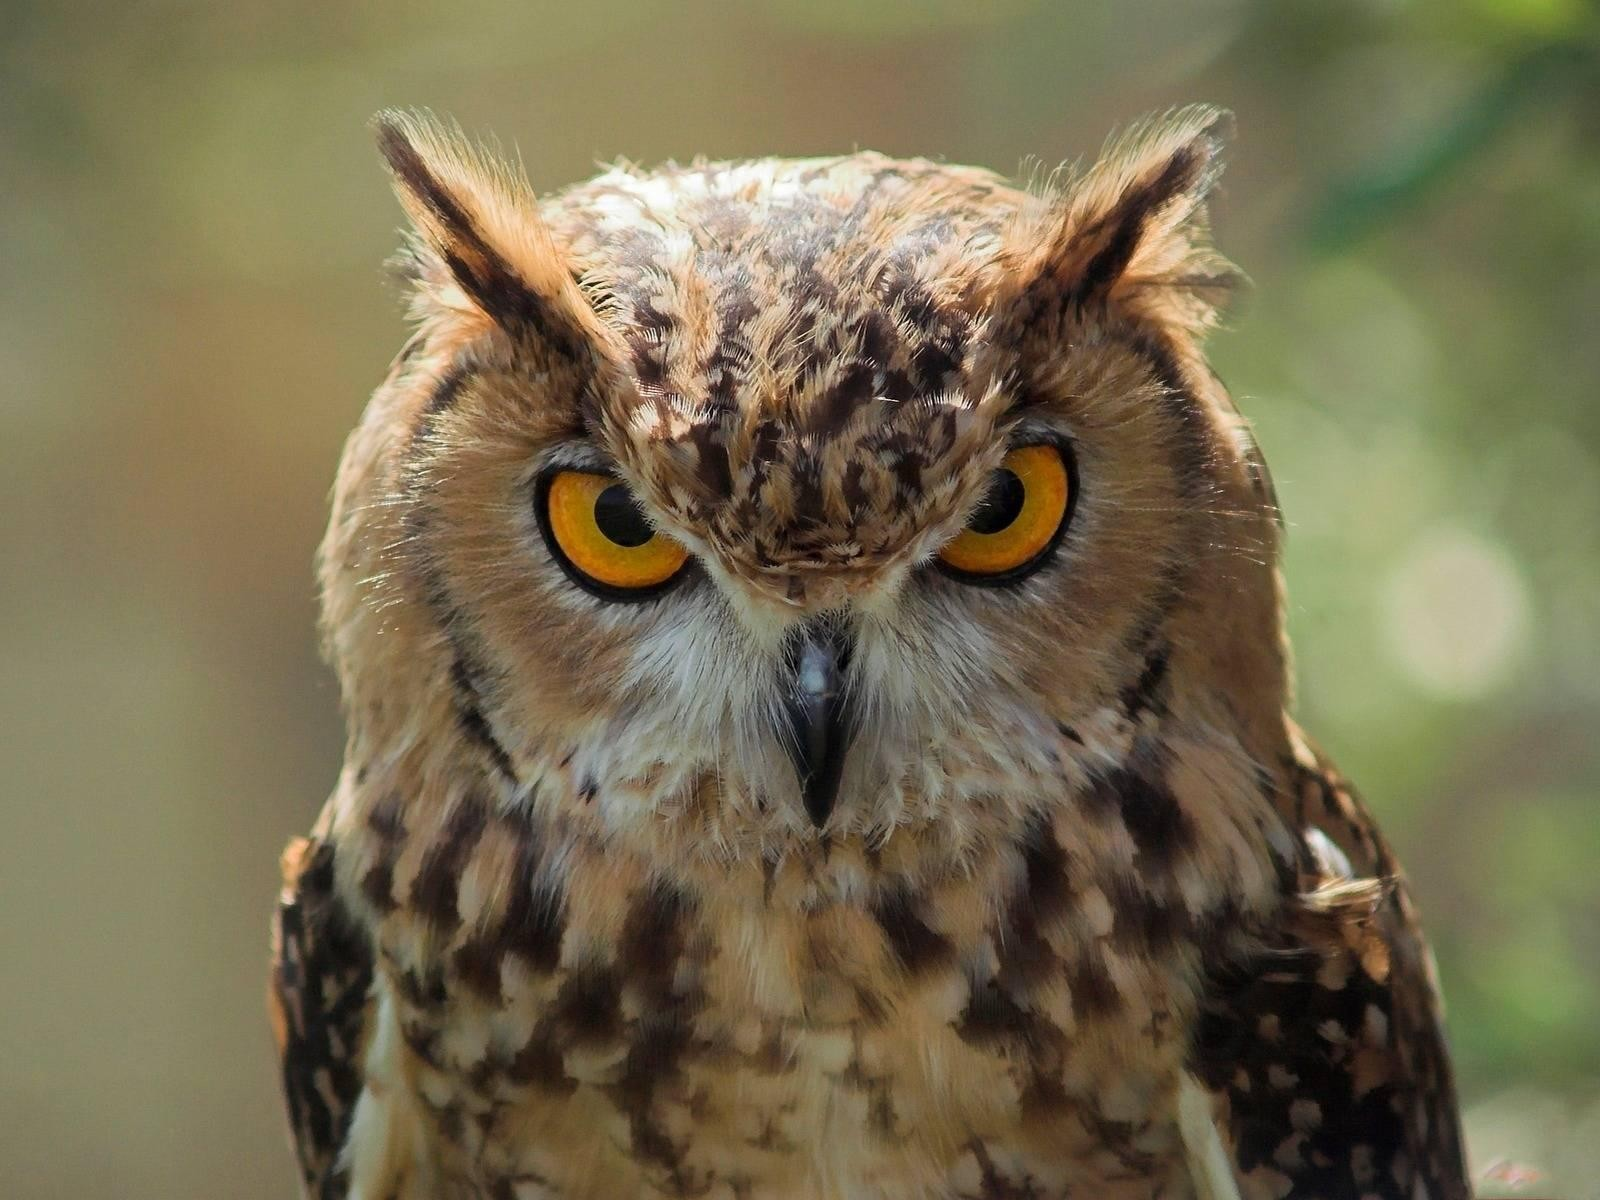 The meaning and symbolism of the word - Owl